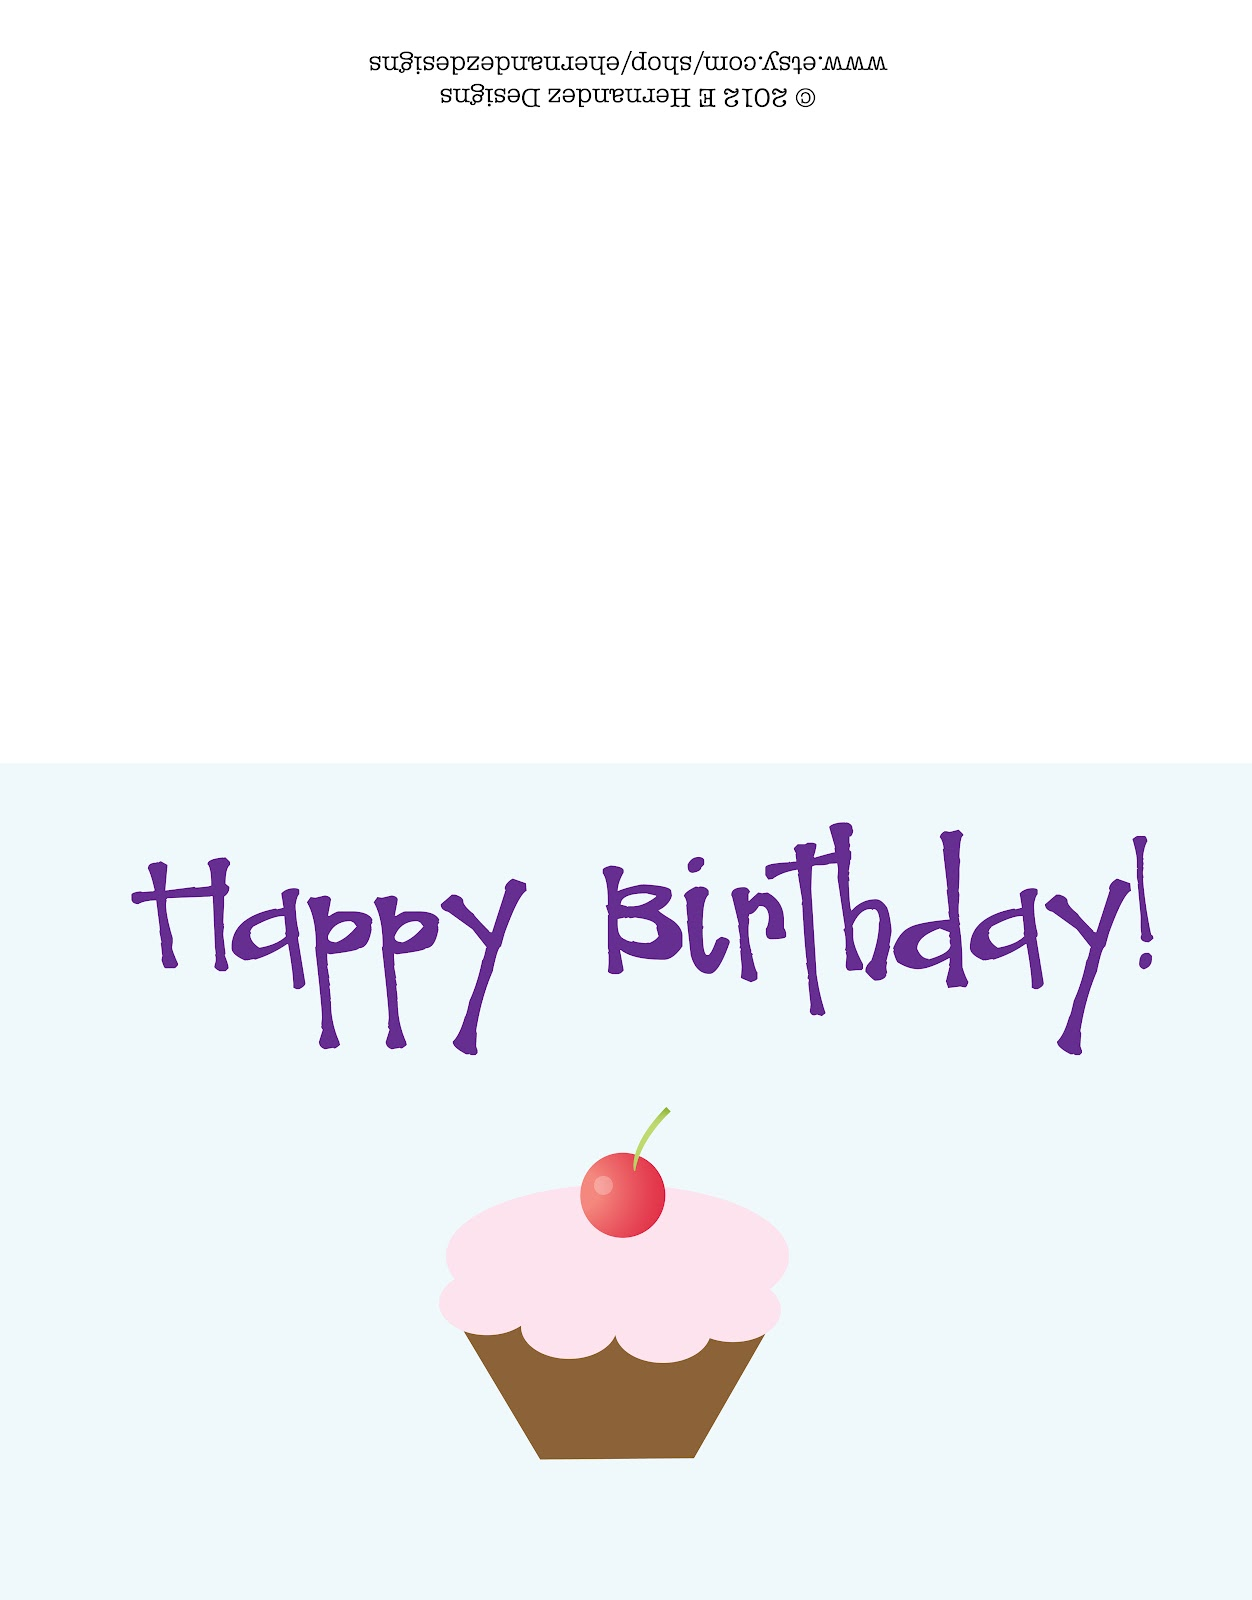 happy birthday card template free – Birthday Cards to Print for Free